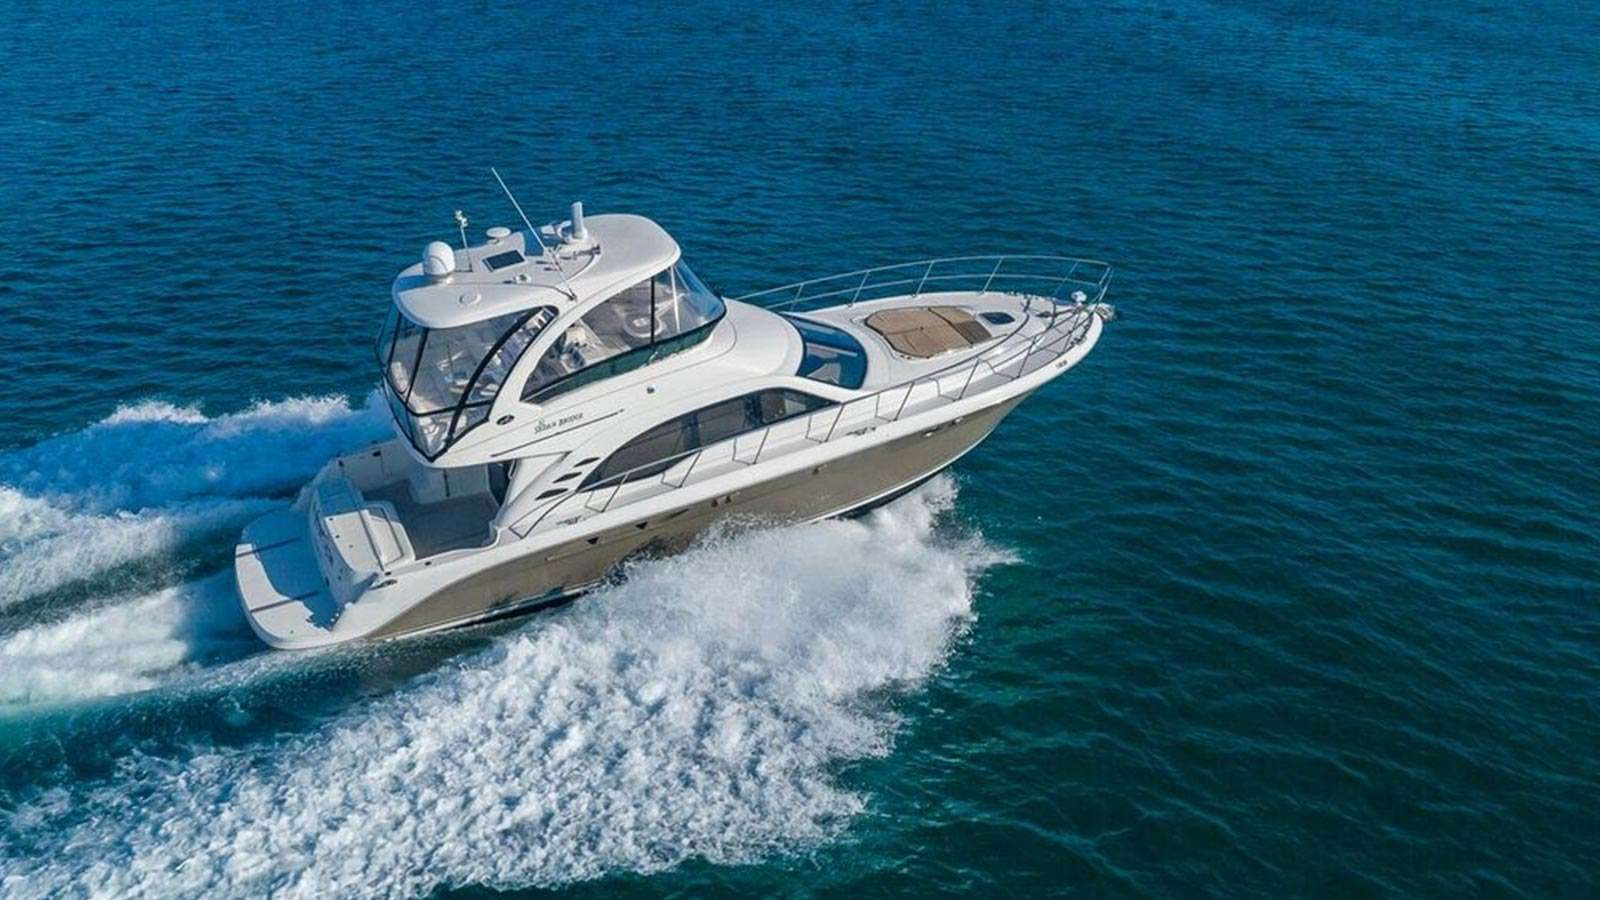 Rent Yacht Miami Cost